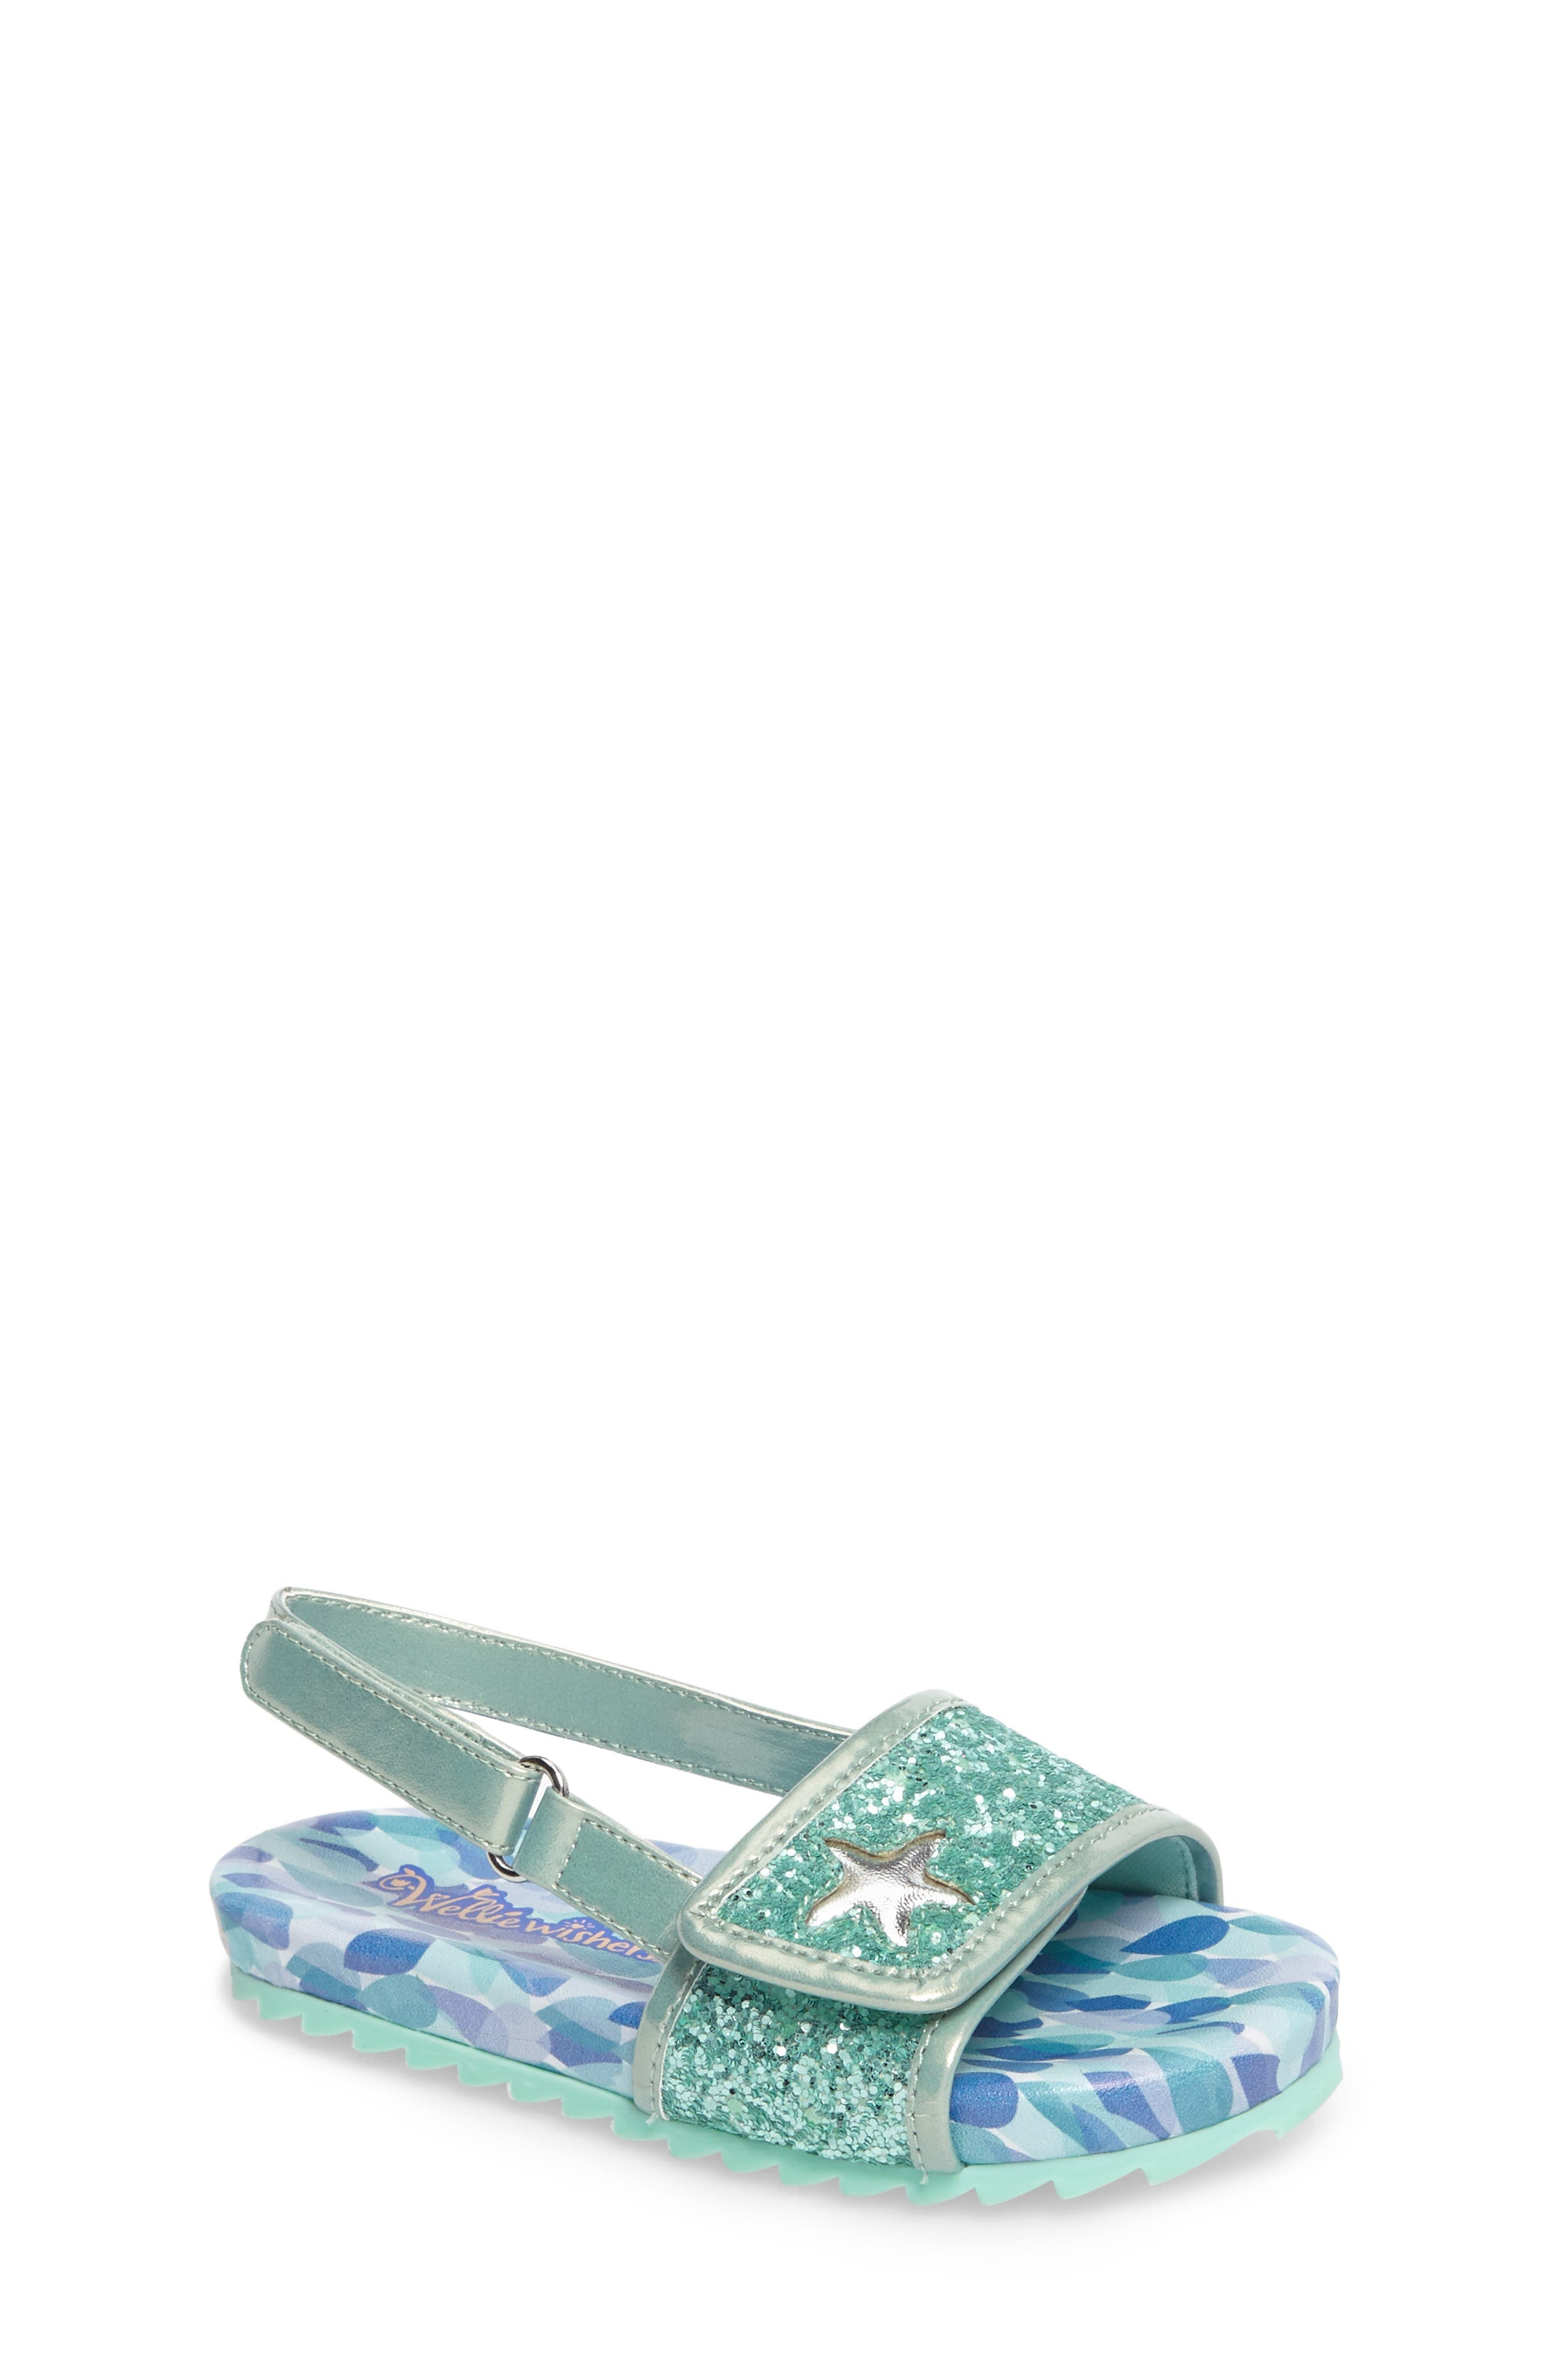 WELLIEWISHERS FROM AMERICAN GIRL Camille Raindrop Strap Sandal, Main, color, 300